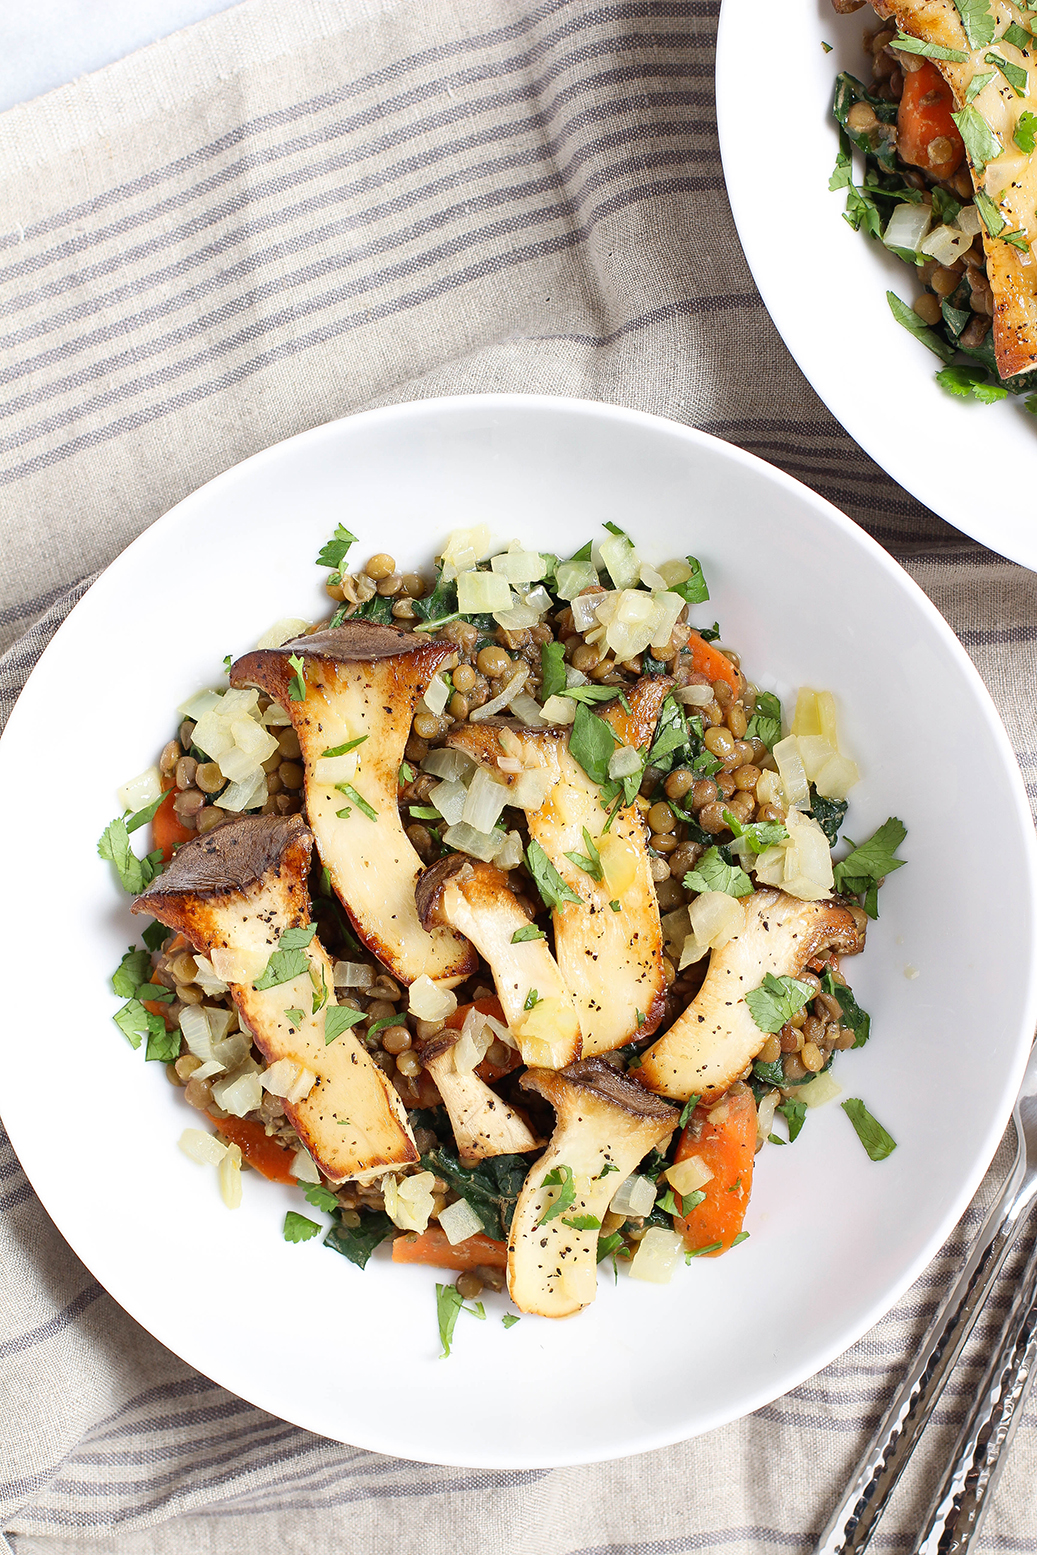 Vegan & gluten free - Trumpet mushrooms with herbed lentils & apple cider vinegar sauce